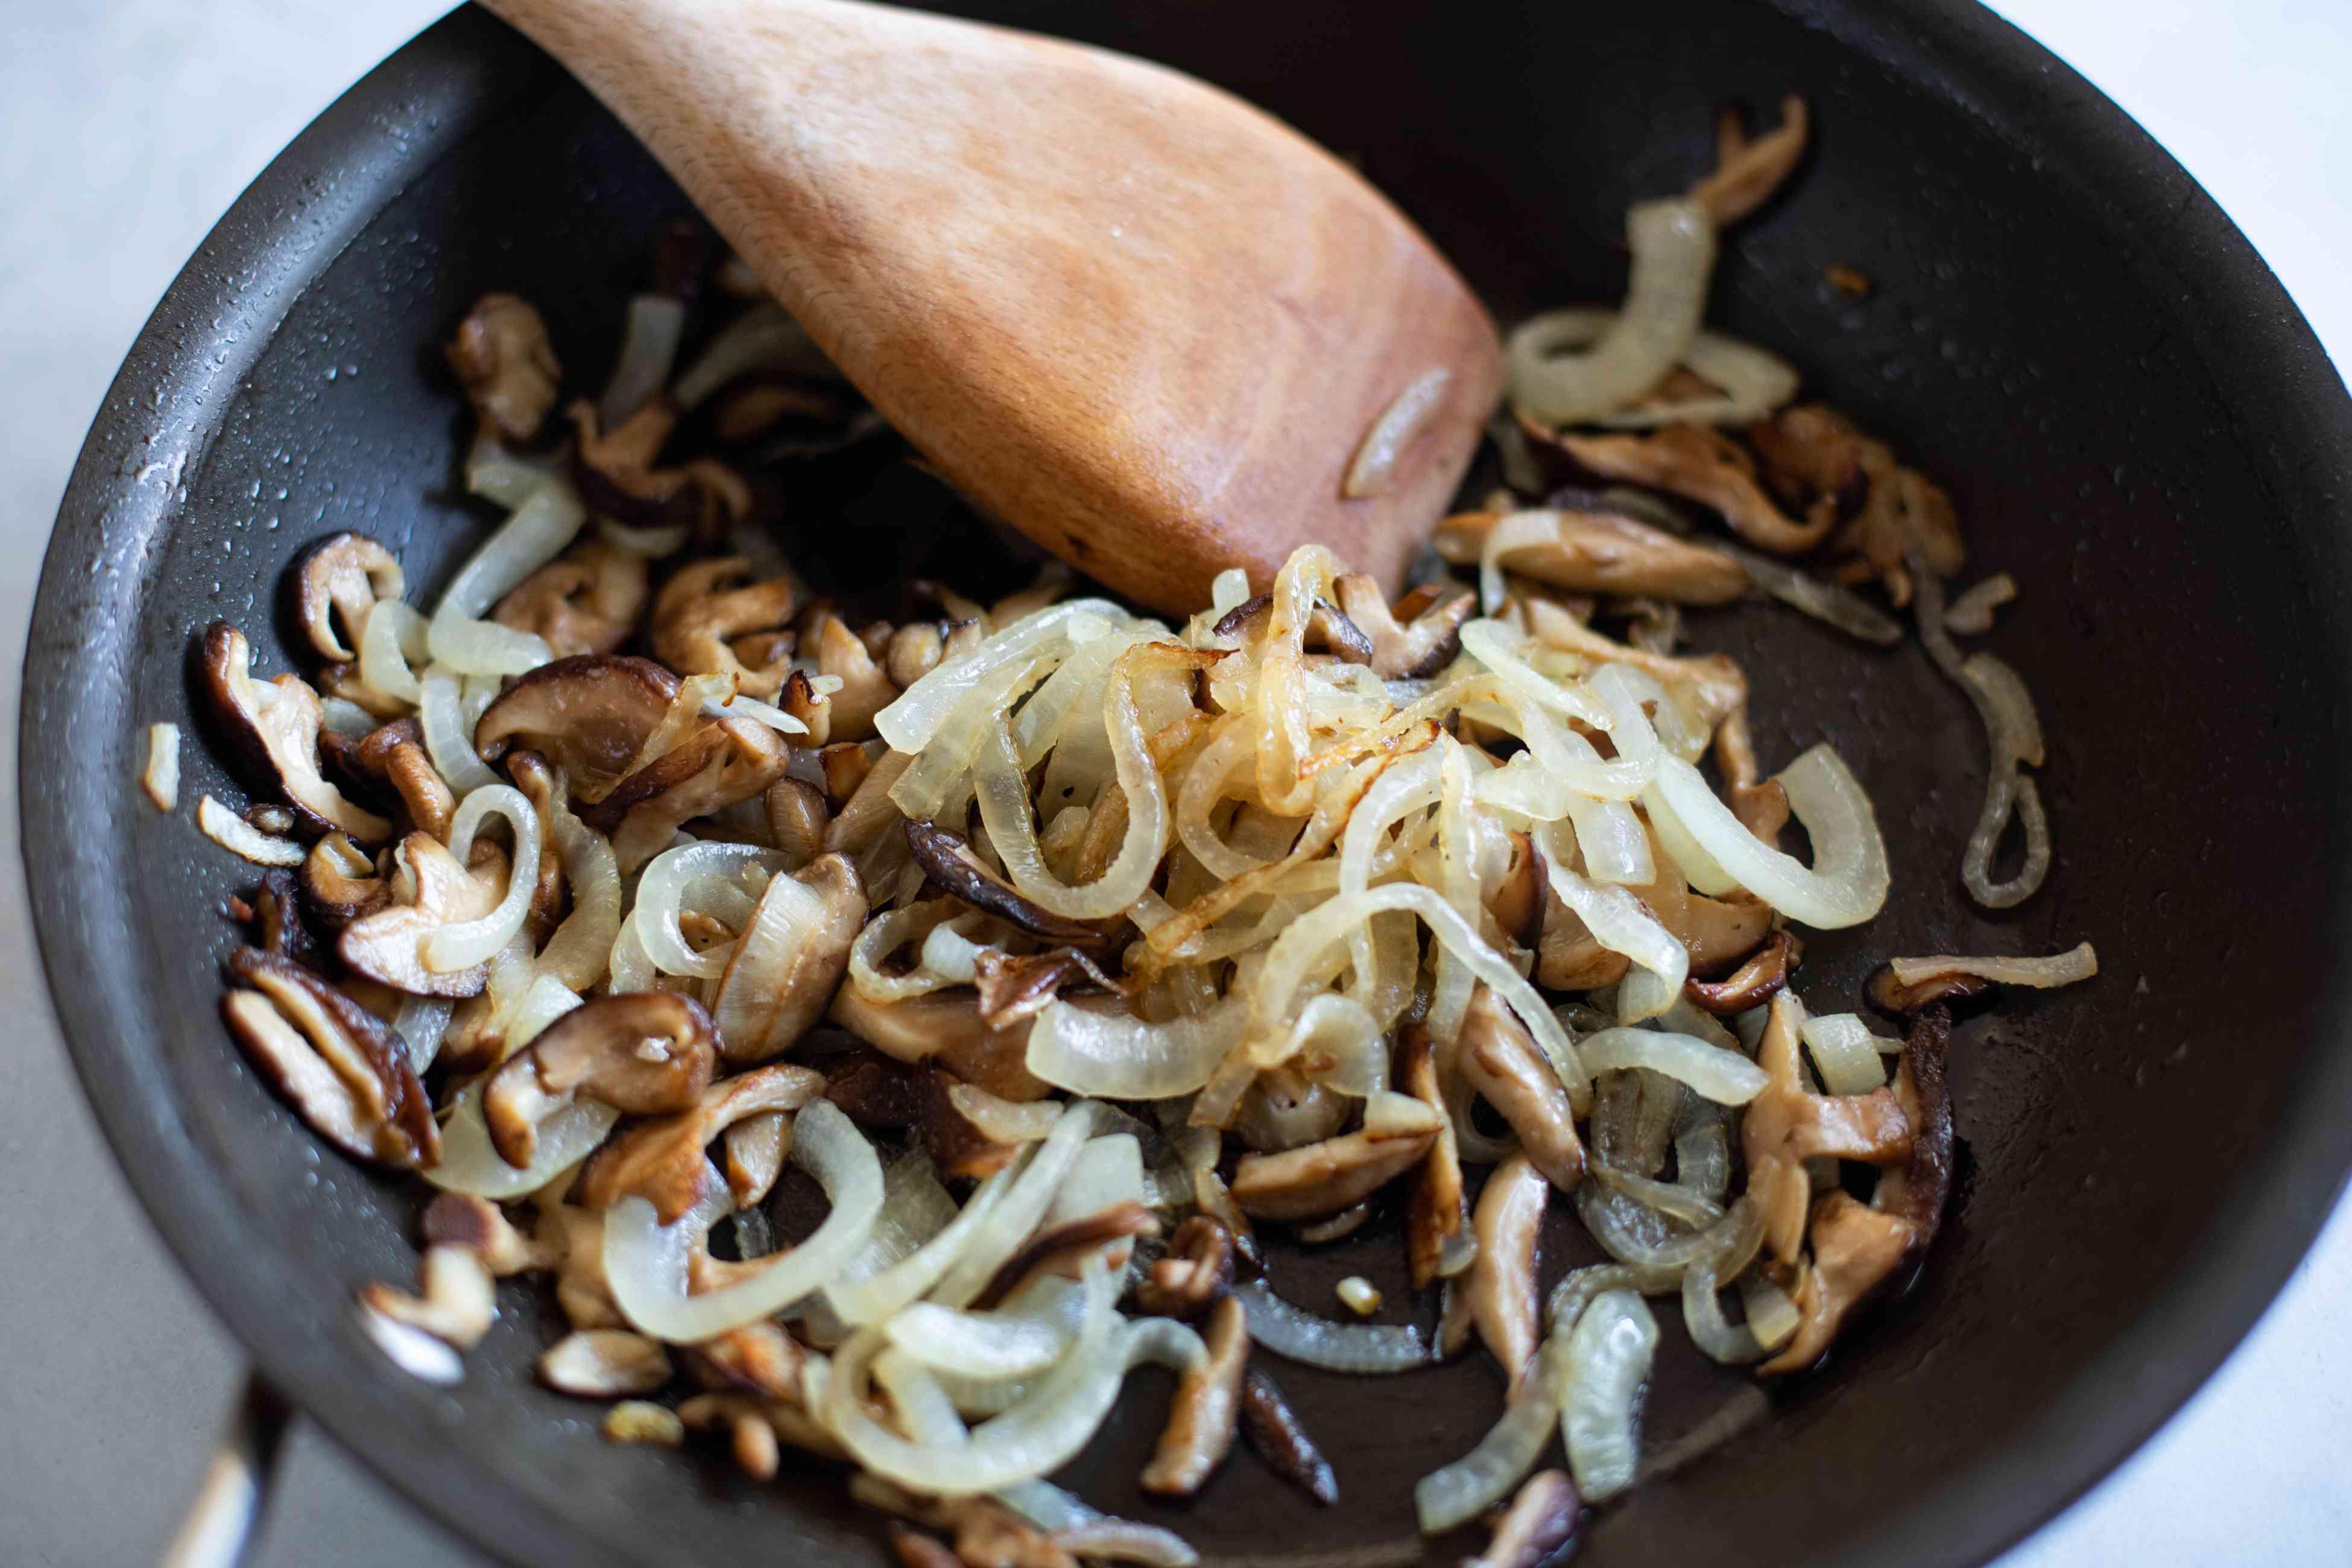 Sauteeing mushrooms for a ground beef and mushroom recipe.